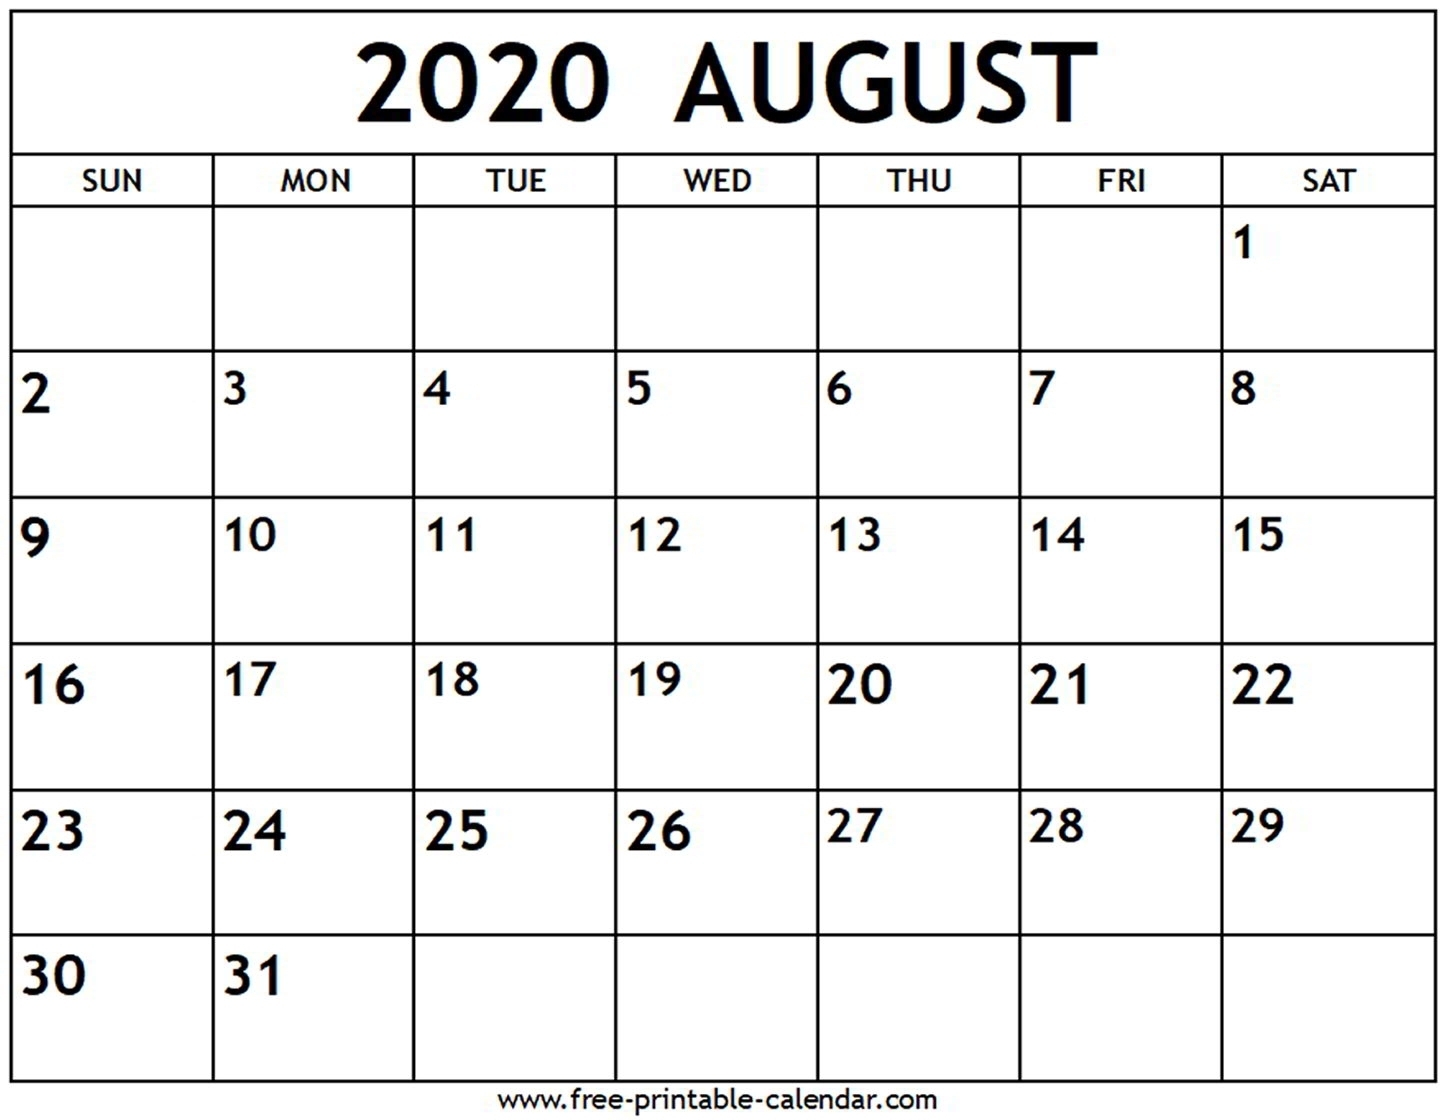 June July August 2020 Printable Calendar | Monthly Printable intended for May June July August 2020 Calendar